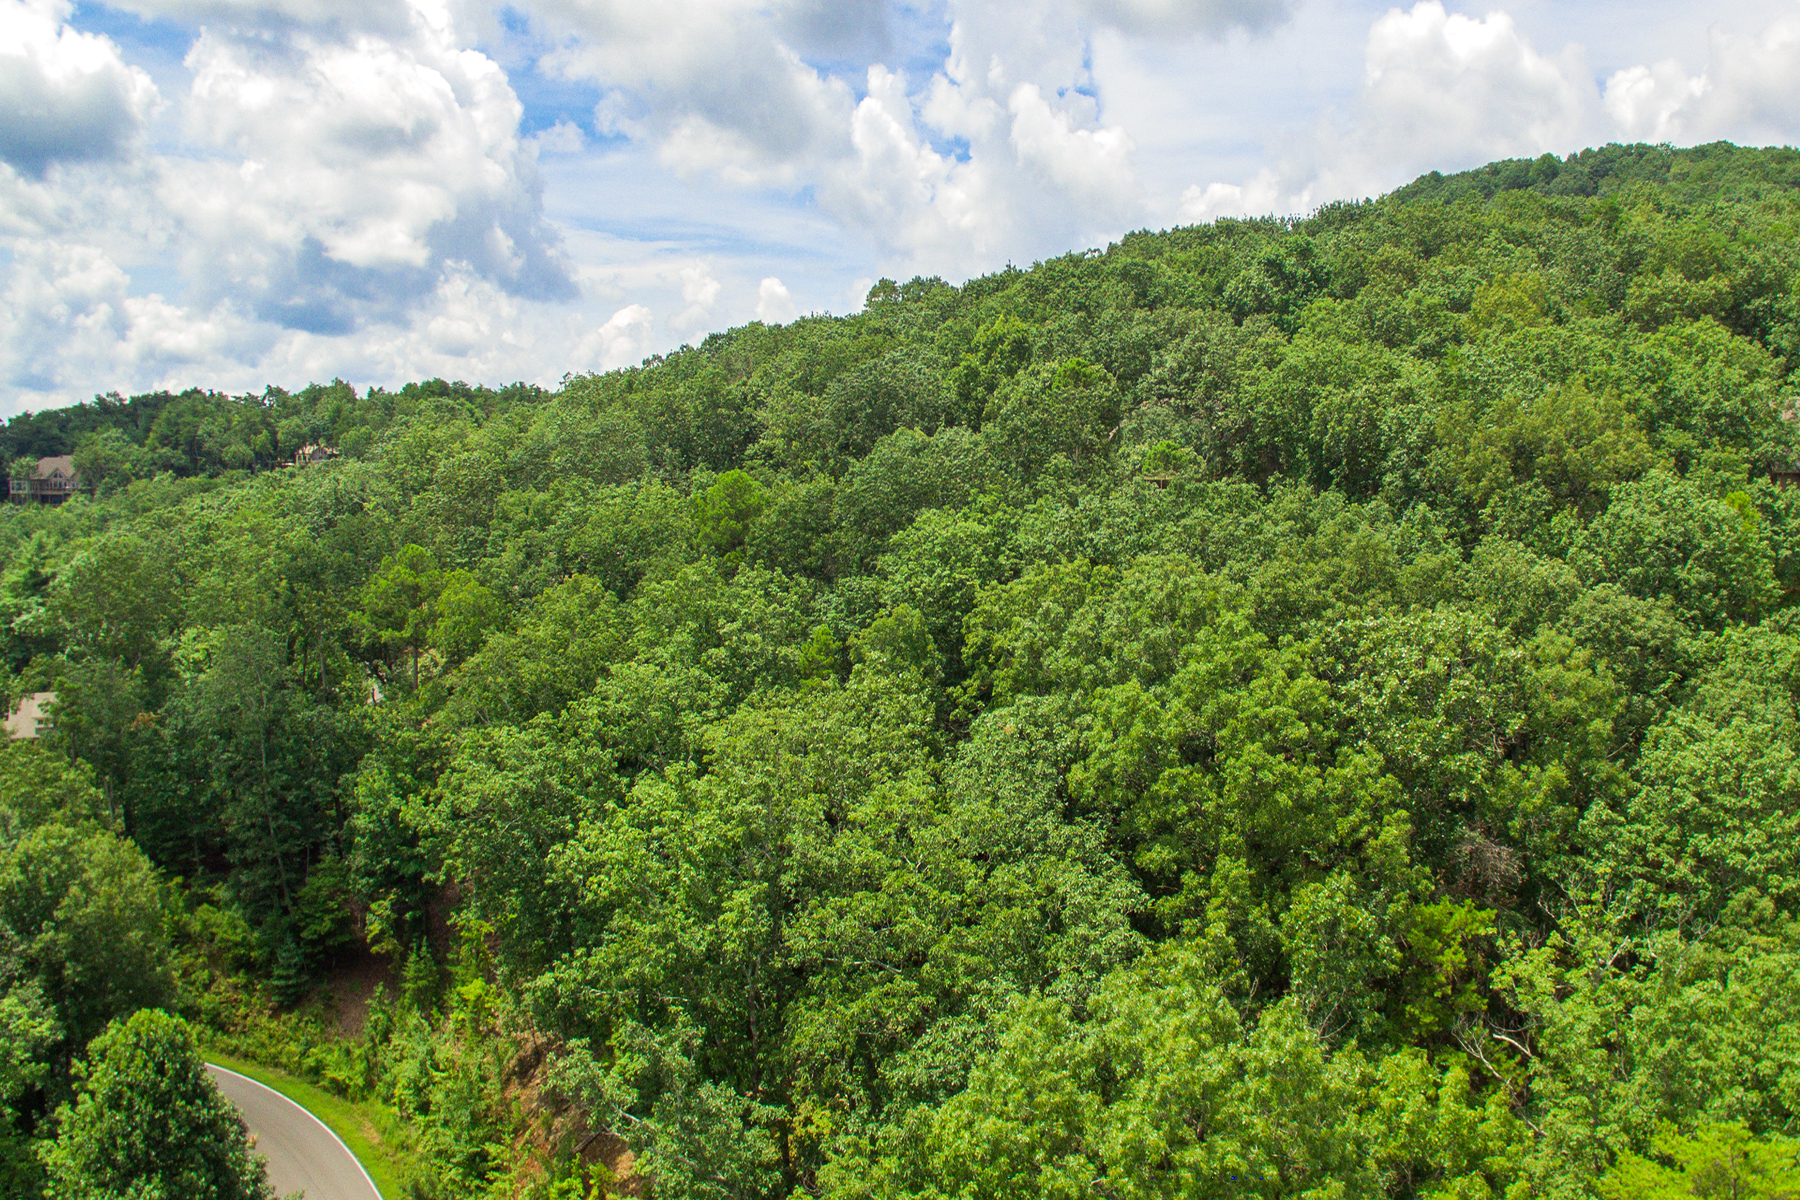 Land for Sale at One Acre Big Canoe Lot With Mountain Laurel 467 Bear Creek Drive Big Canoe, Georgia 30143 United States